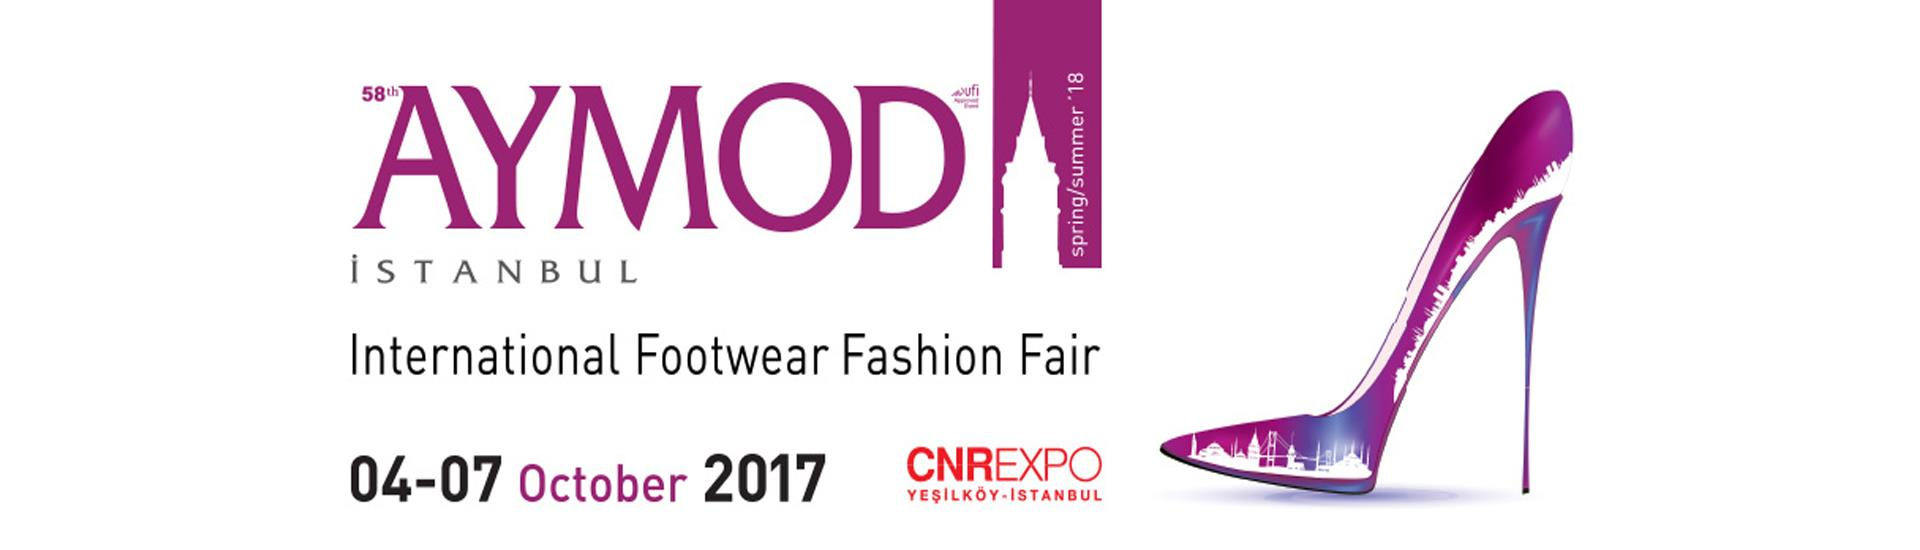 58th Aymod Fair